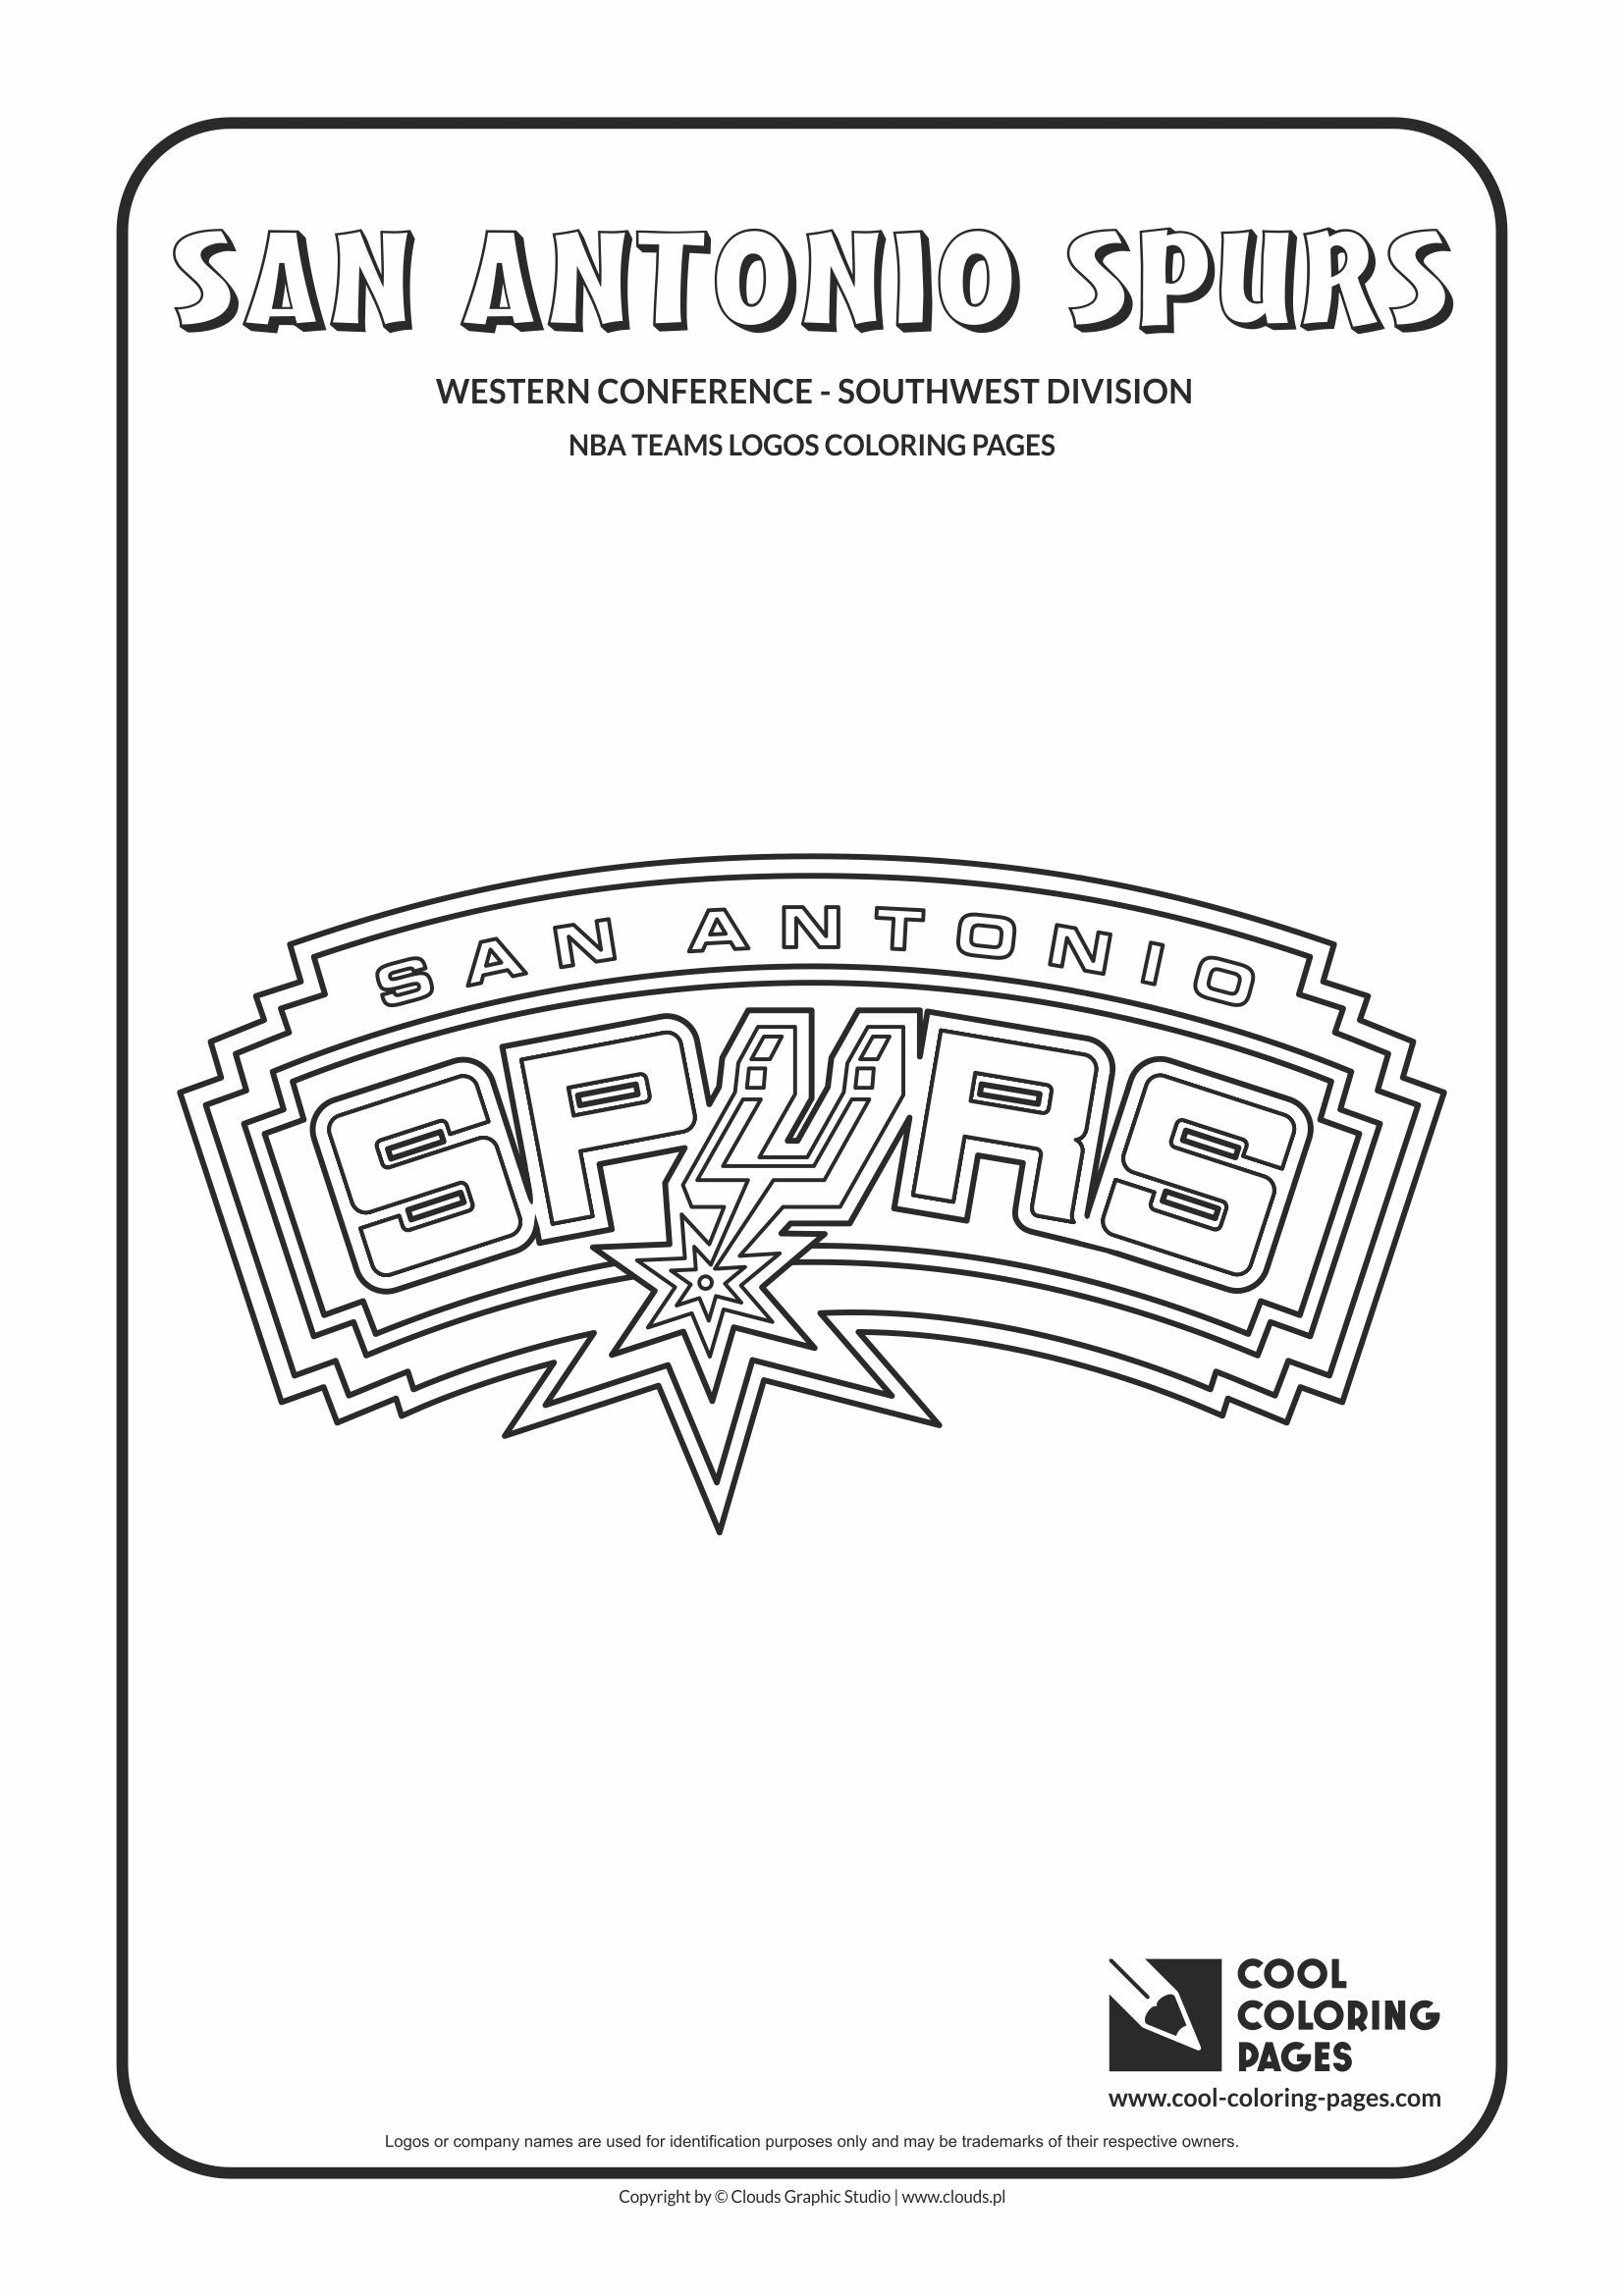 San Antonio Spurs Nba Basketball Teams Logos Coloring Pages